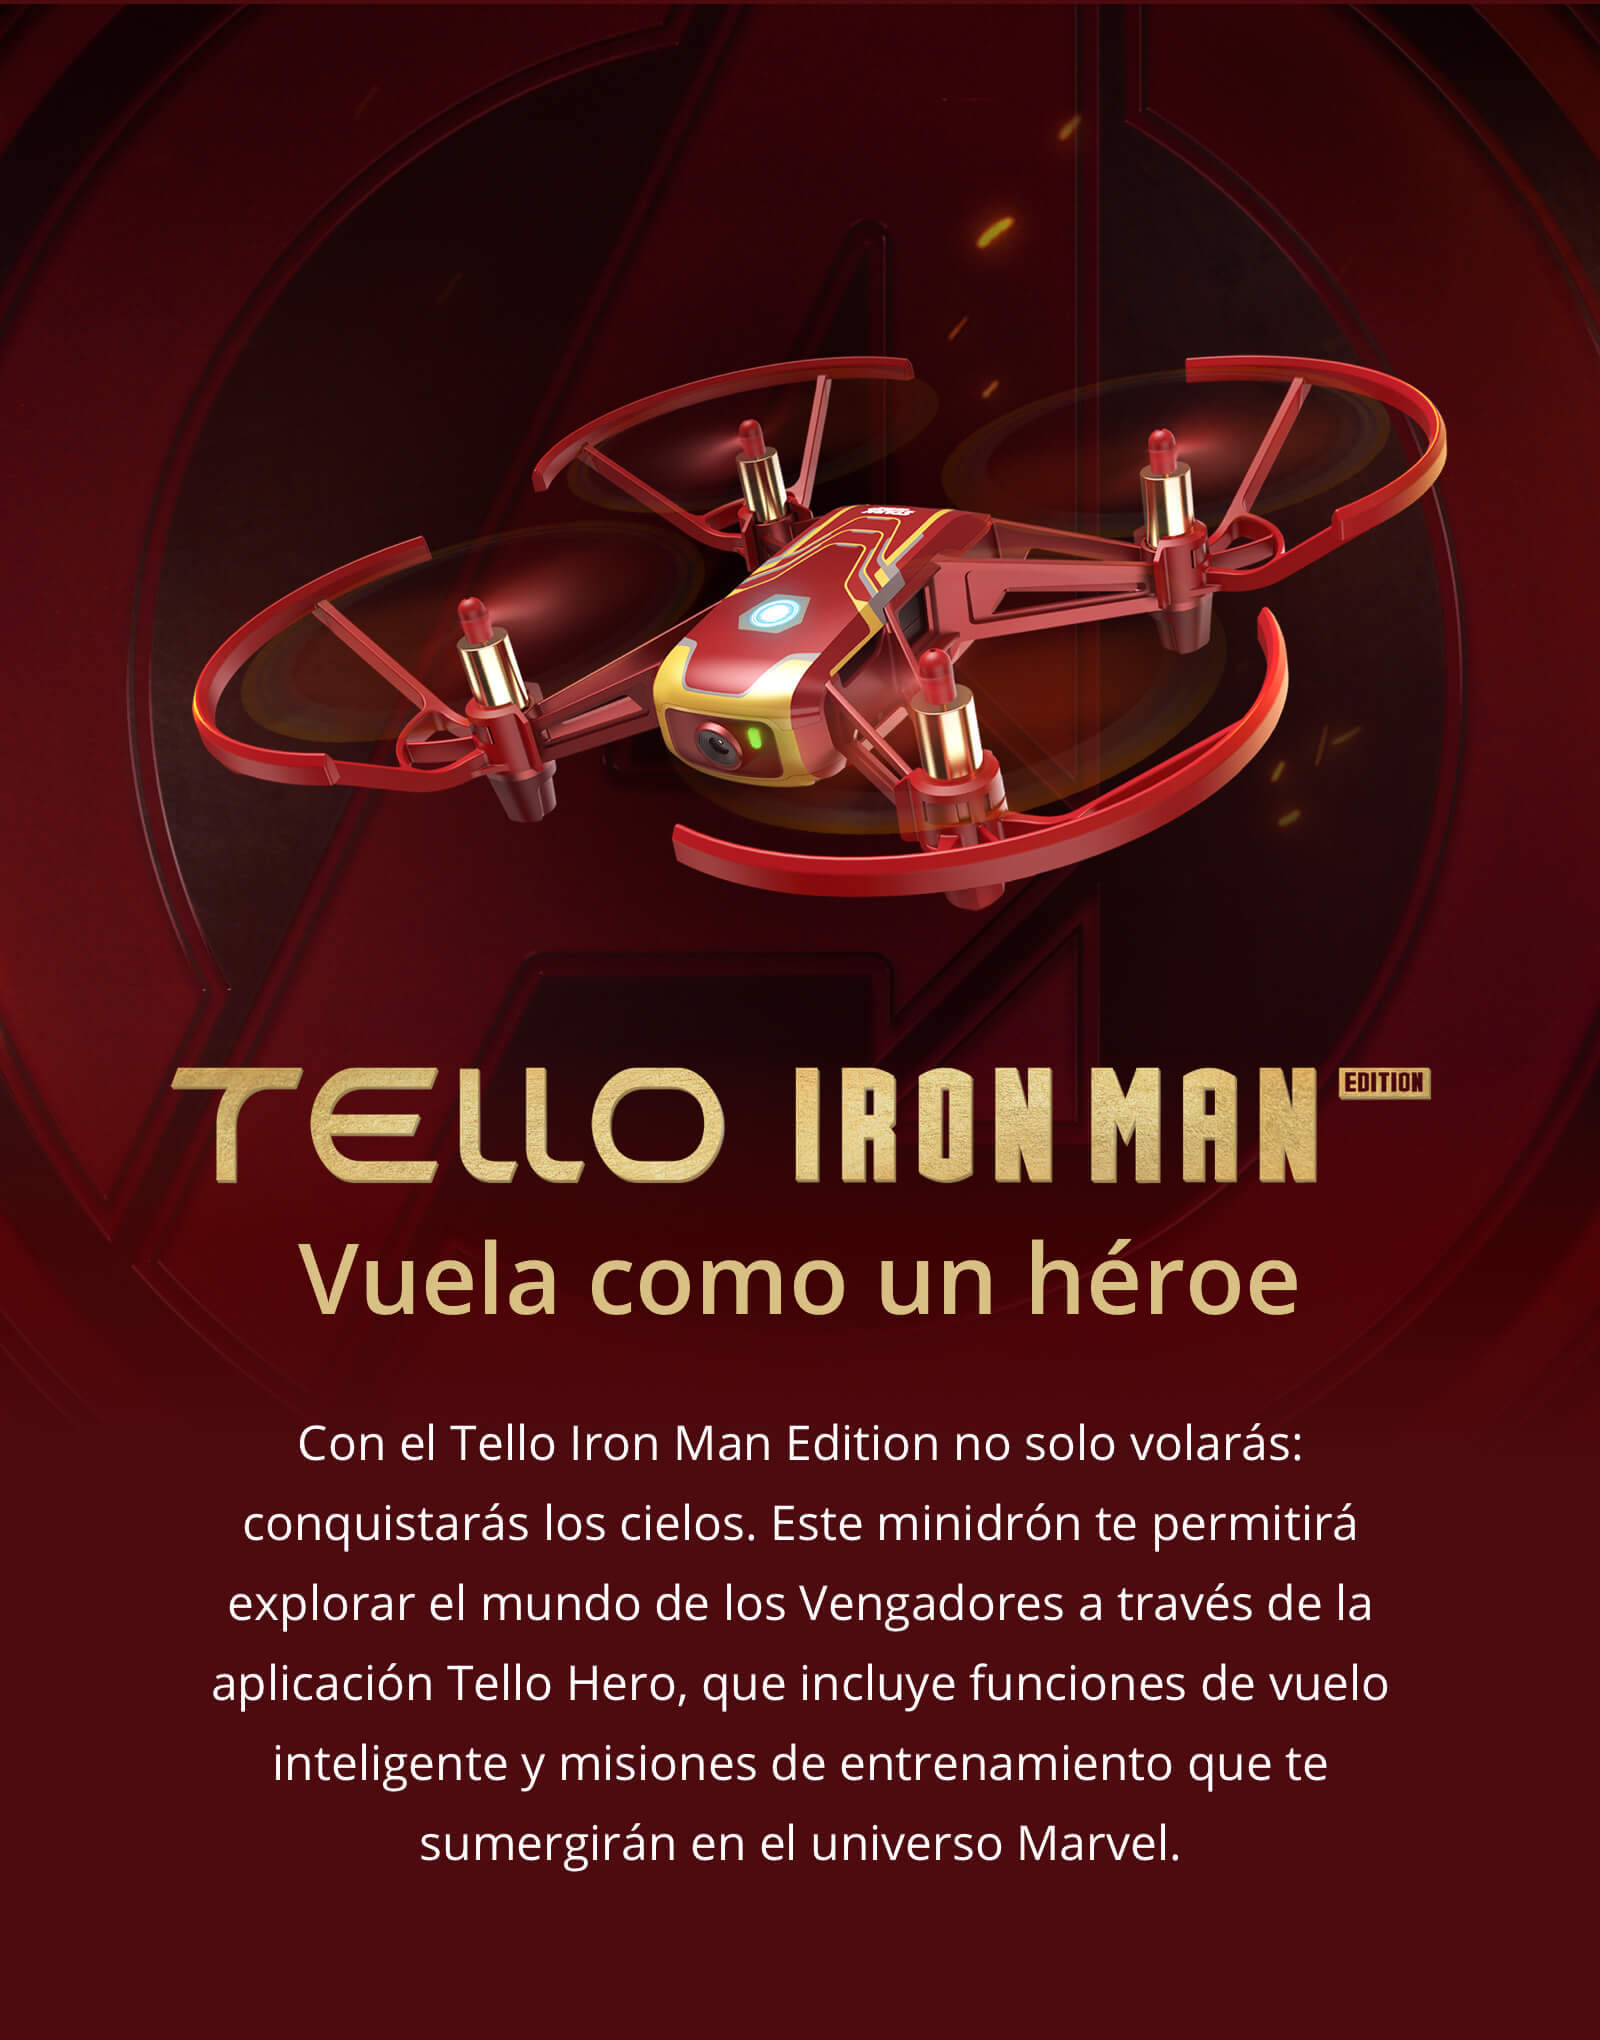 Tello_Iron_Man_Edition_stockrc